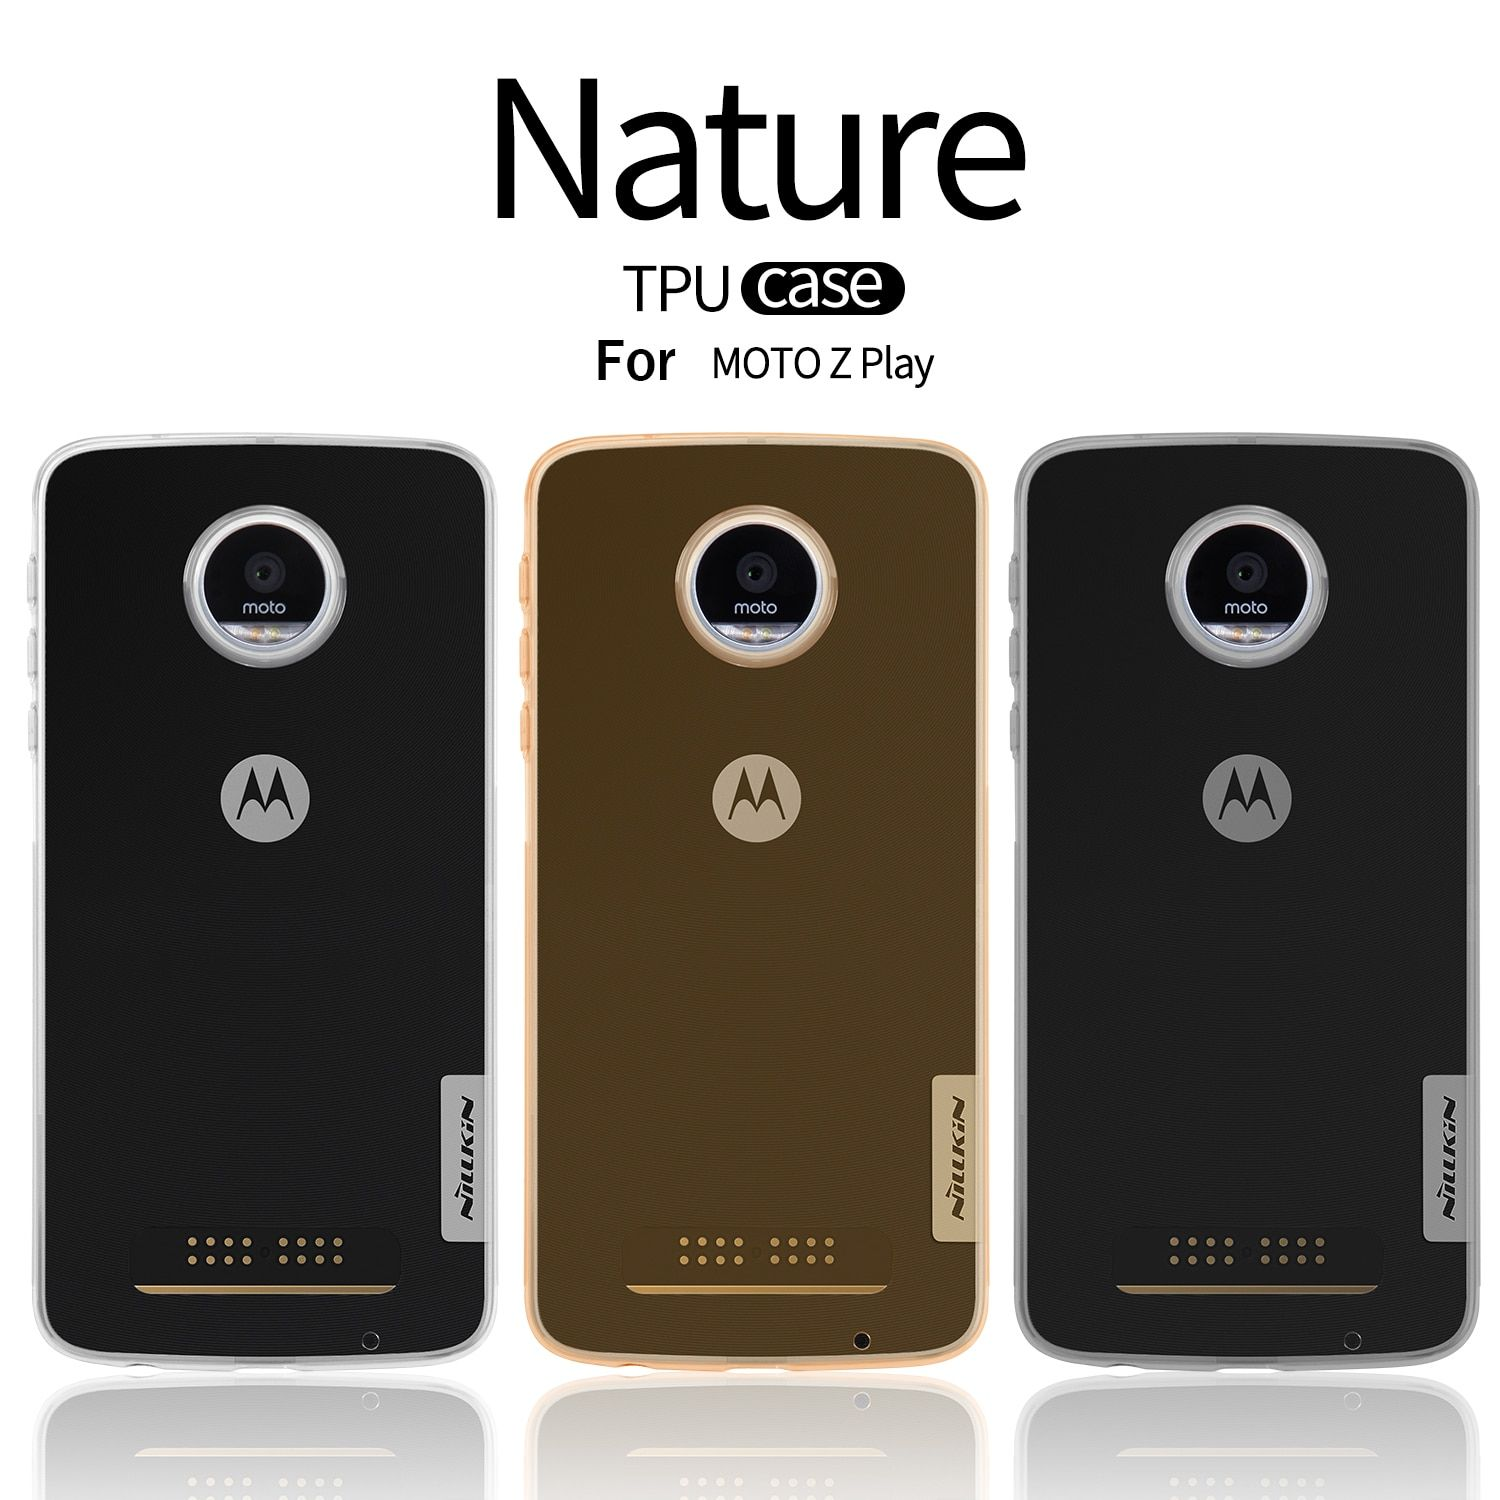 NILLKIN Ultra Thin Slim TPU Case For Motorola MOTO Z Play XT1635 Hight Quality Soft TPU Back Cover For Motorola MOTO Z Play